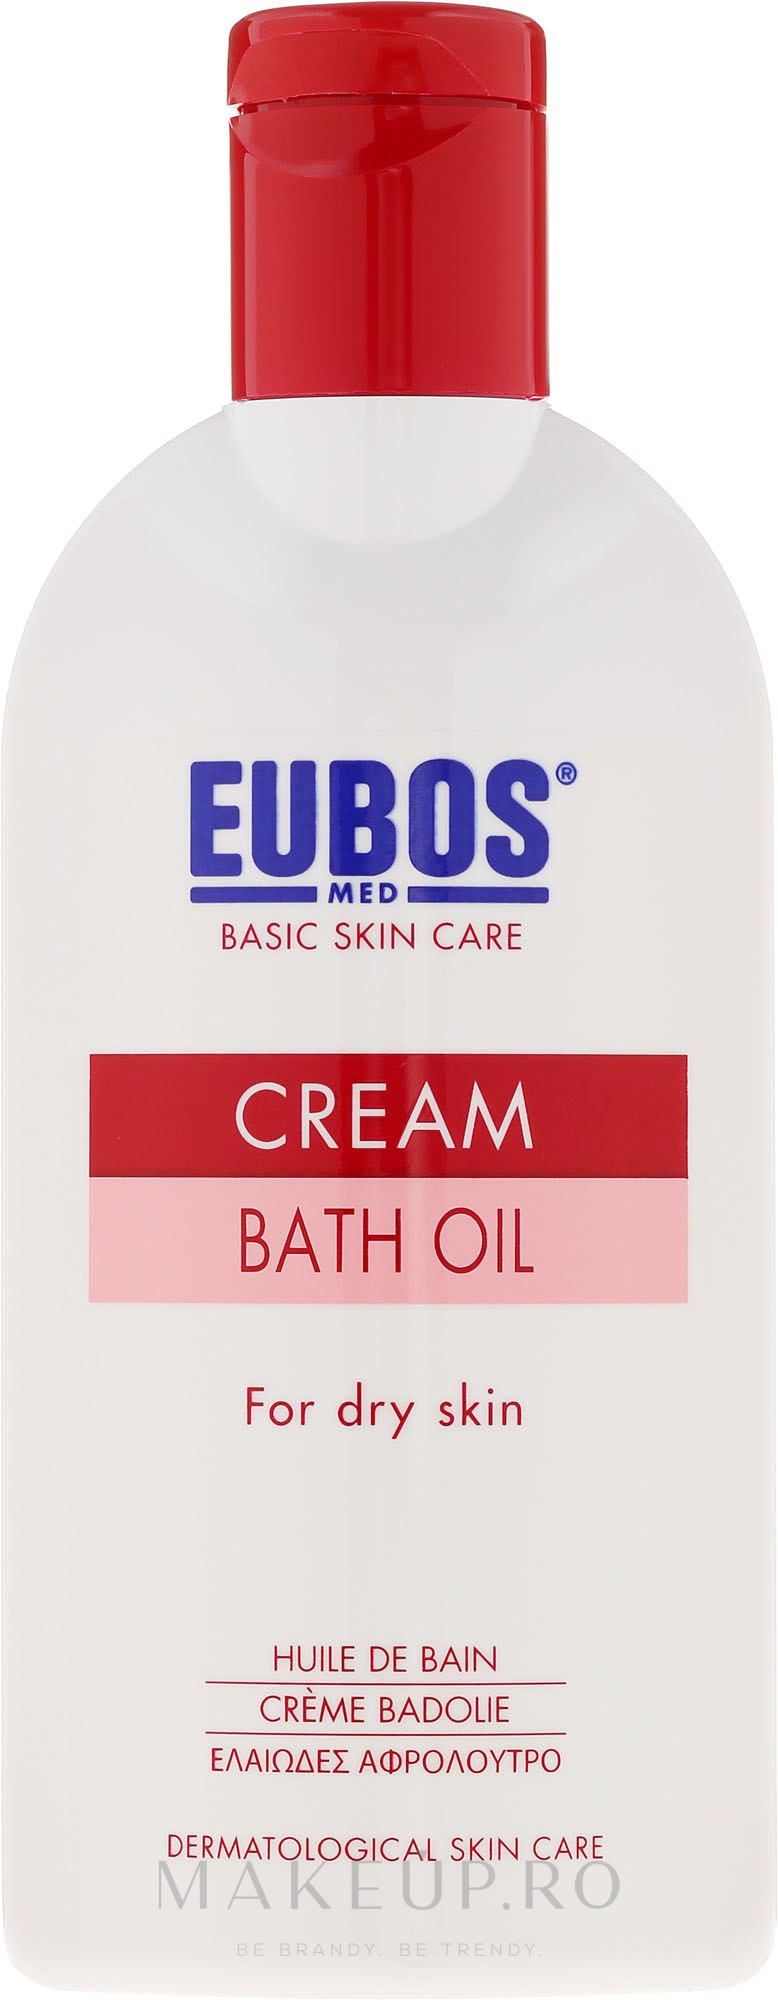 Ulei de baie - Eubos Med Basic Skin Care Cream Bath Oil For Dry Skin — Imagine 200 ml